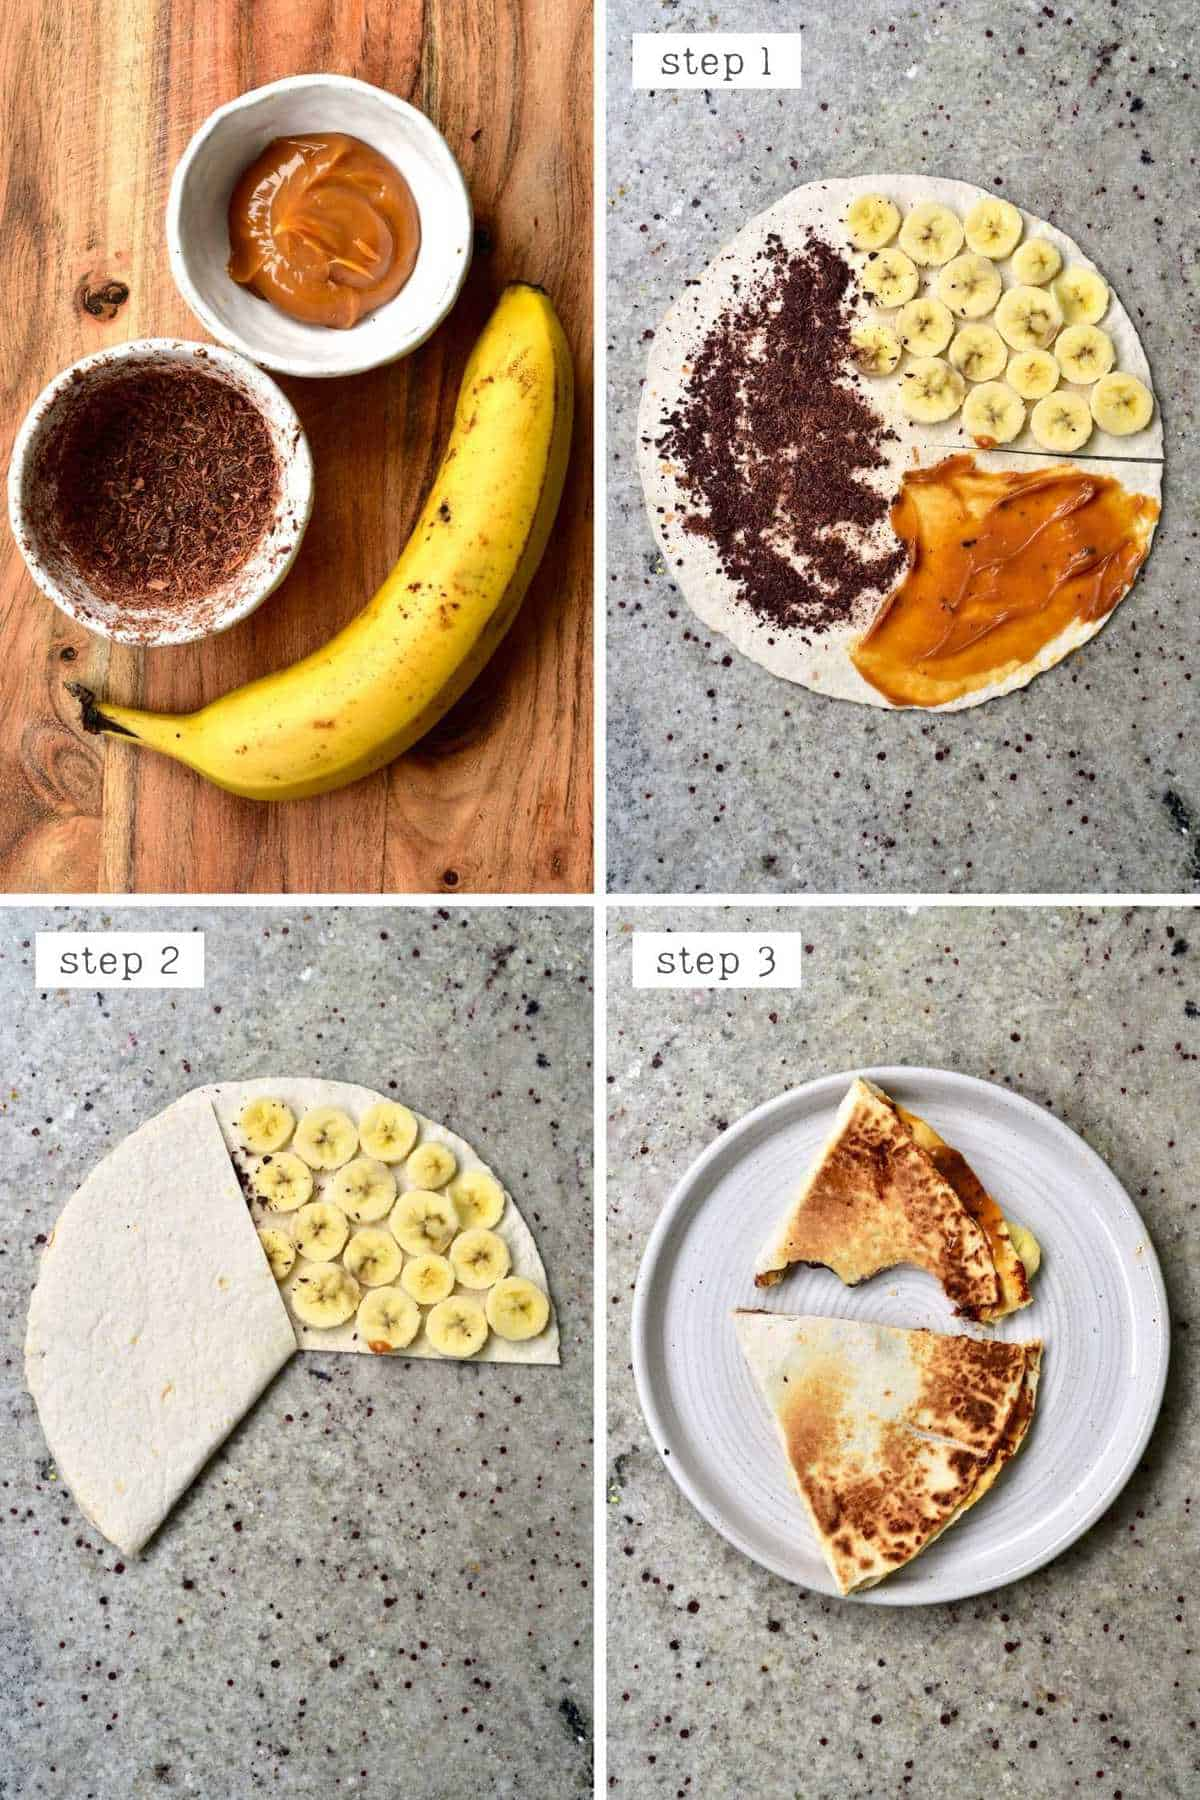 Steps for making banoffee tortilla